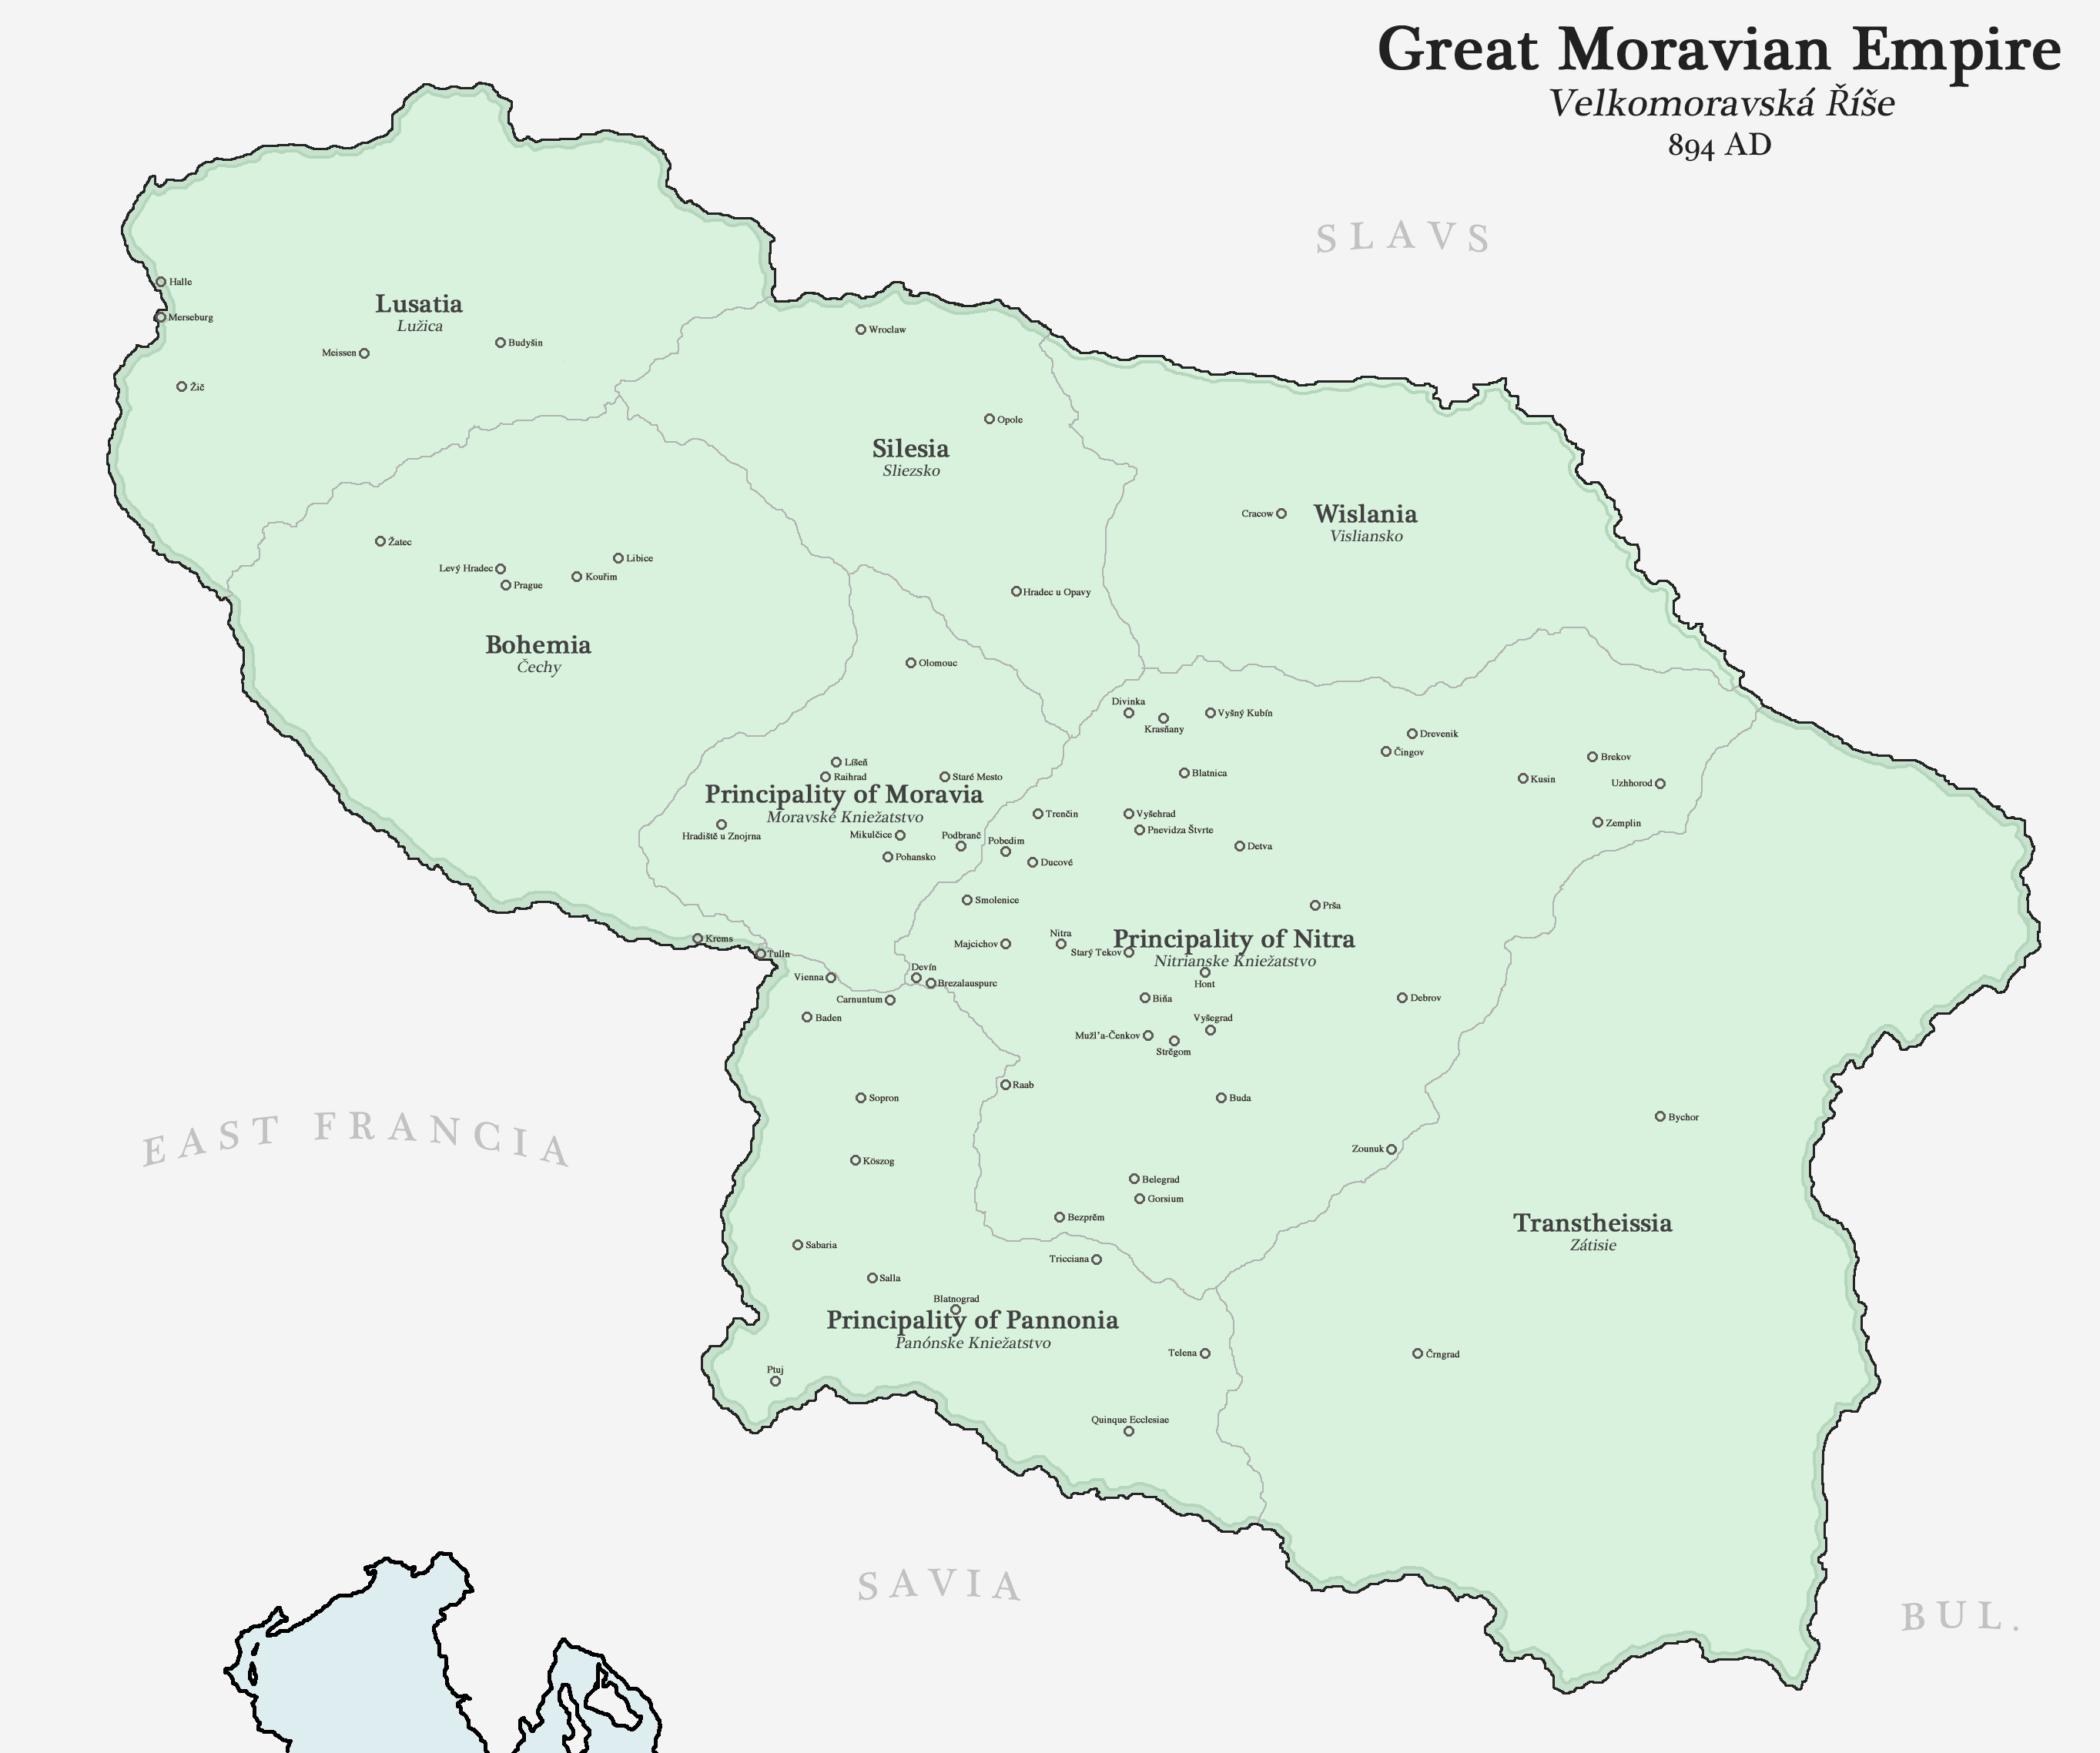 Great Moravian Empire by Upvoteanthology